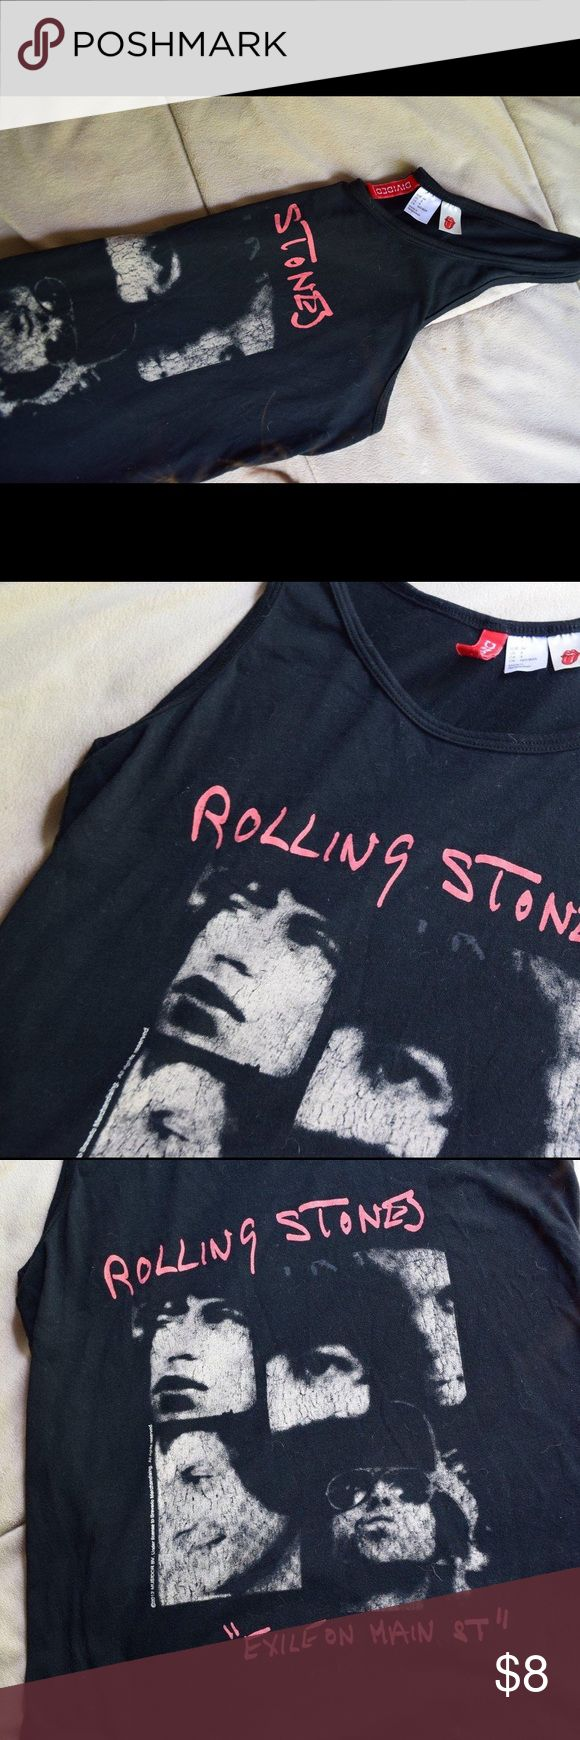 """H&M tank top H&M graphic tank top with the Rolling Stones album cover """"Exile on Main Street"""". It's in new condition! H&M Tops Tank Tops"""